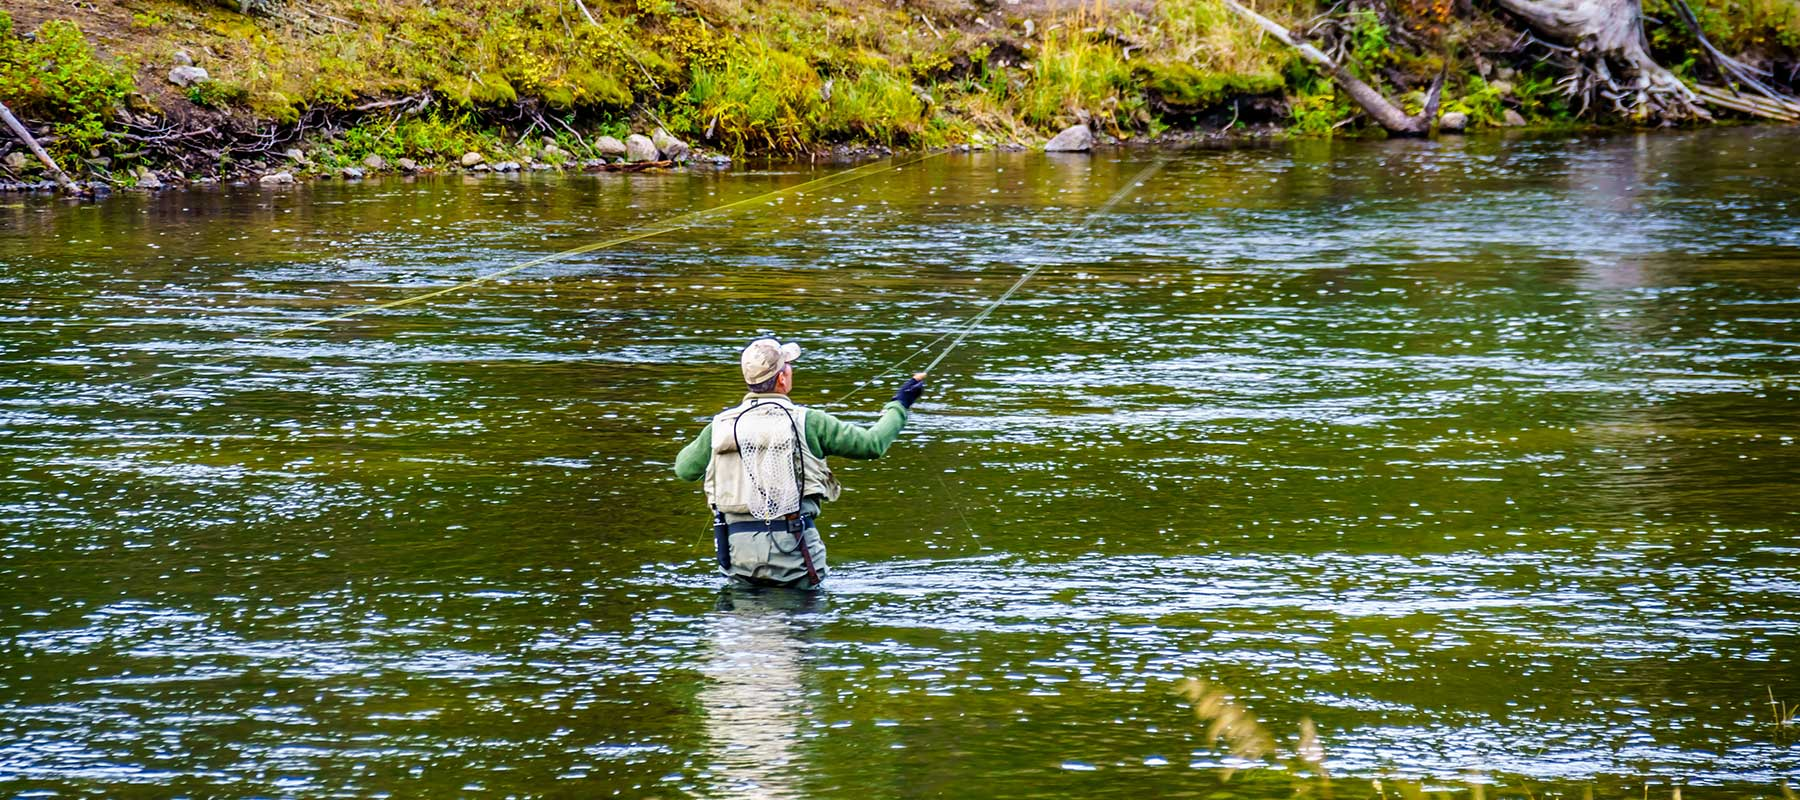 Real Estate Listings with Fly Fishing in Montana